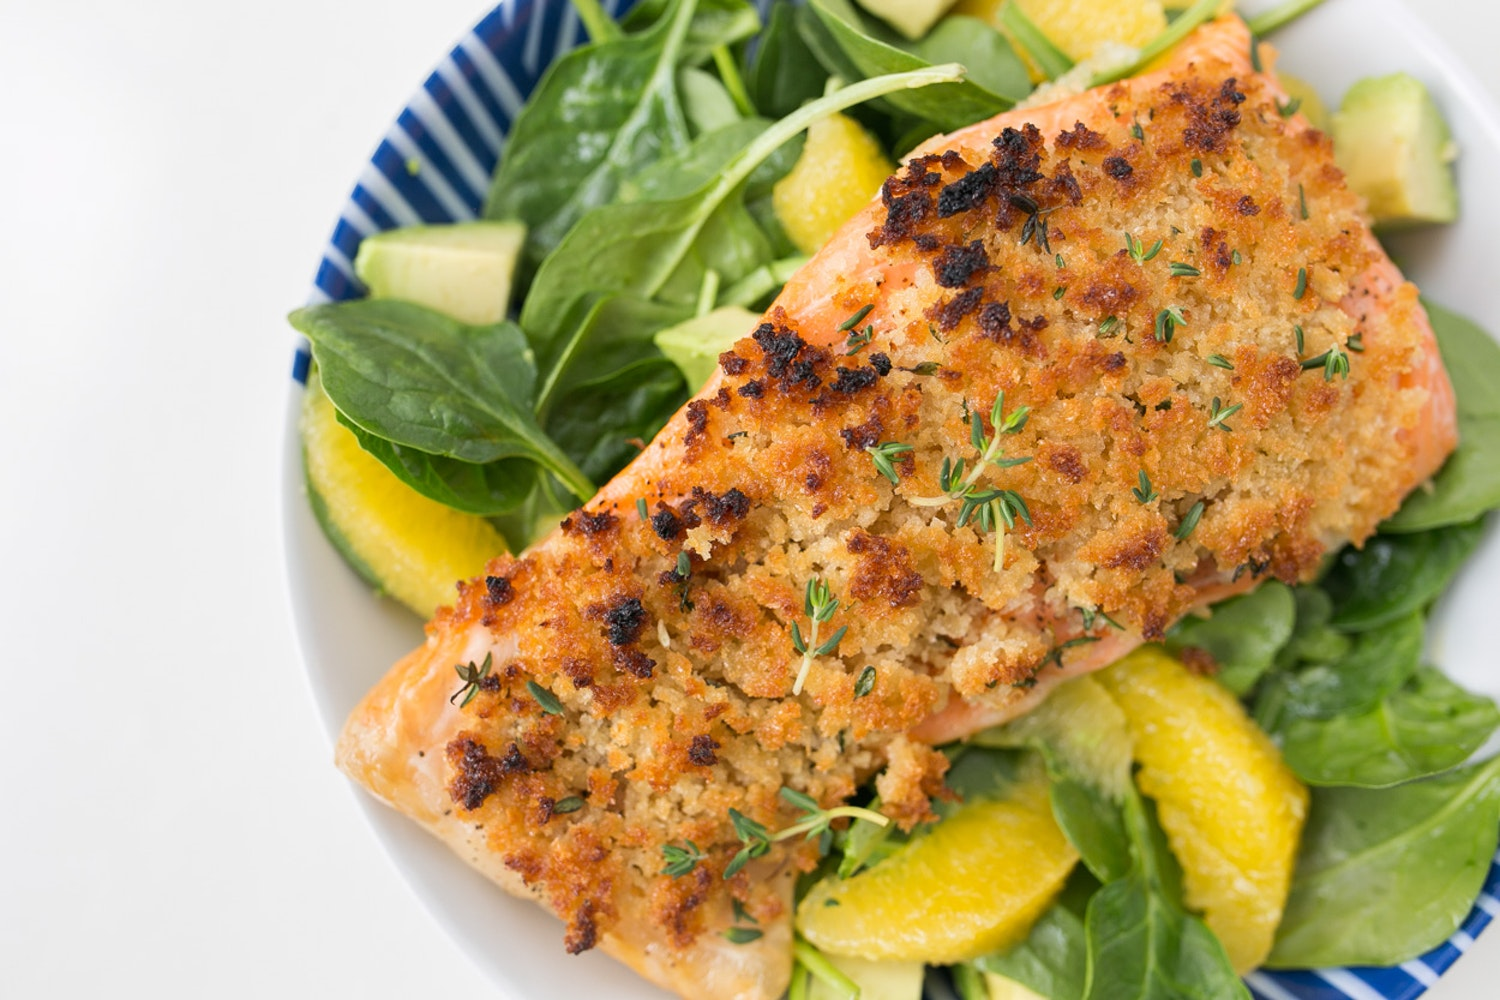 20150119 maple thyme salmon salad nm 005.jpg?ixlib=rails 2.1